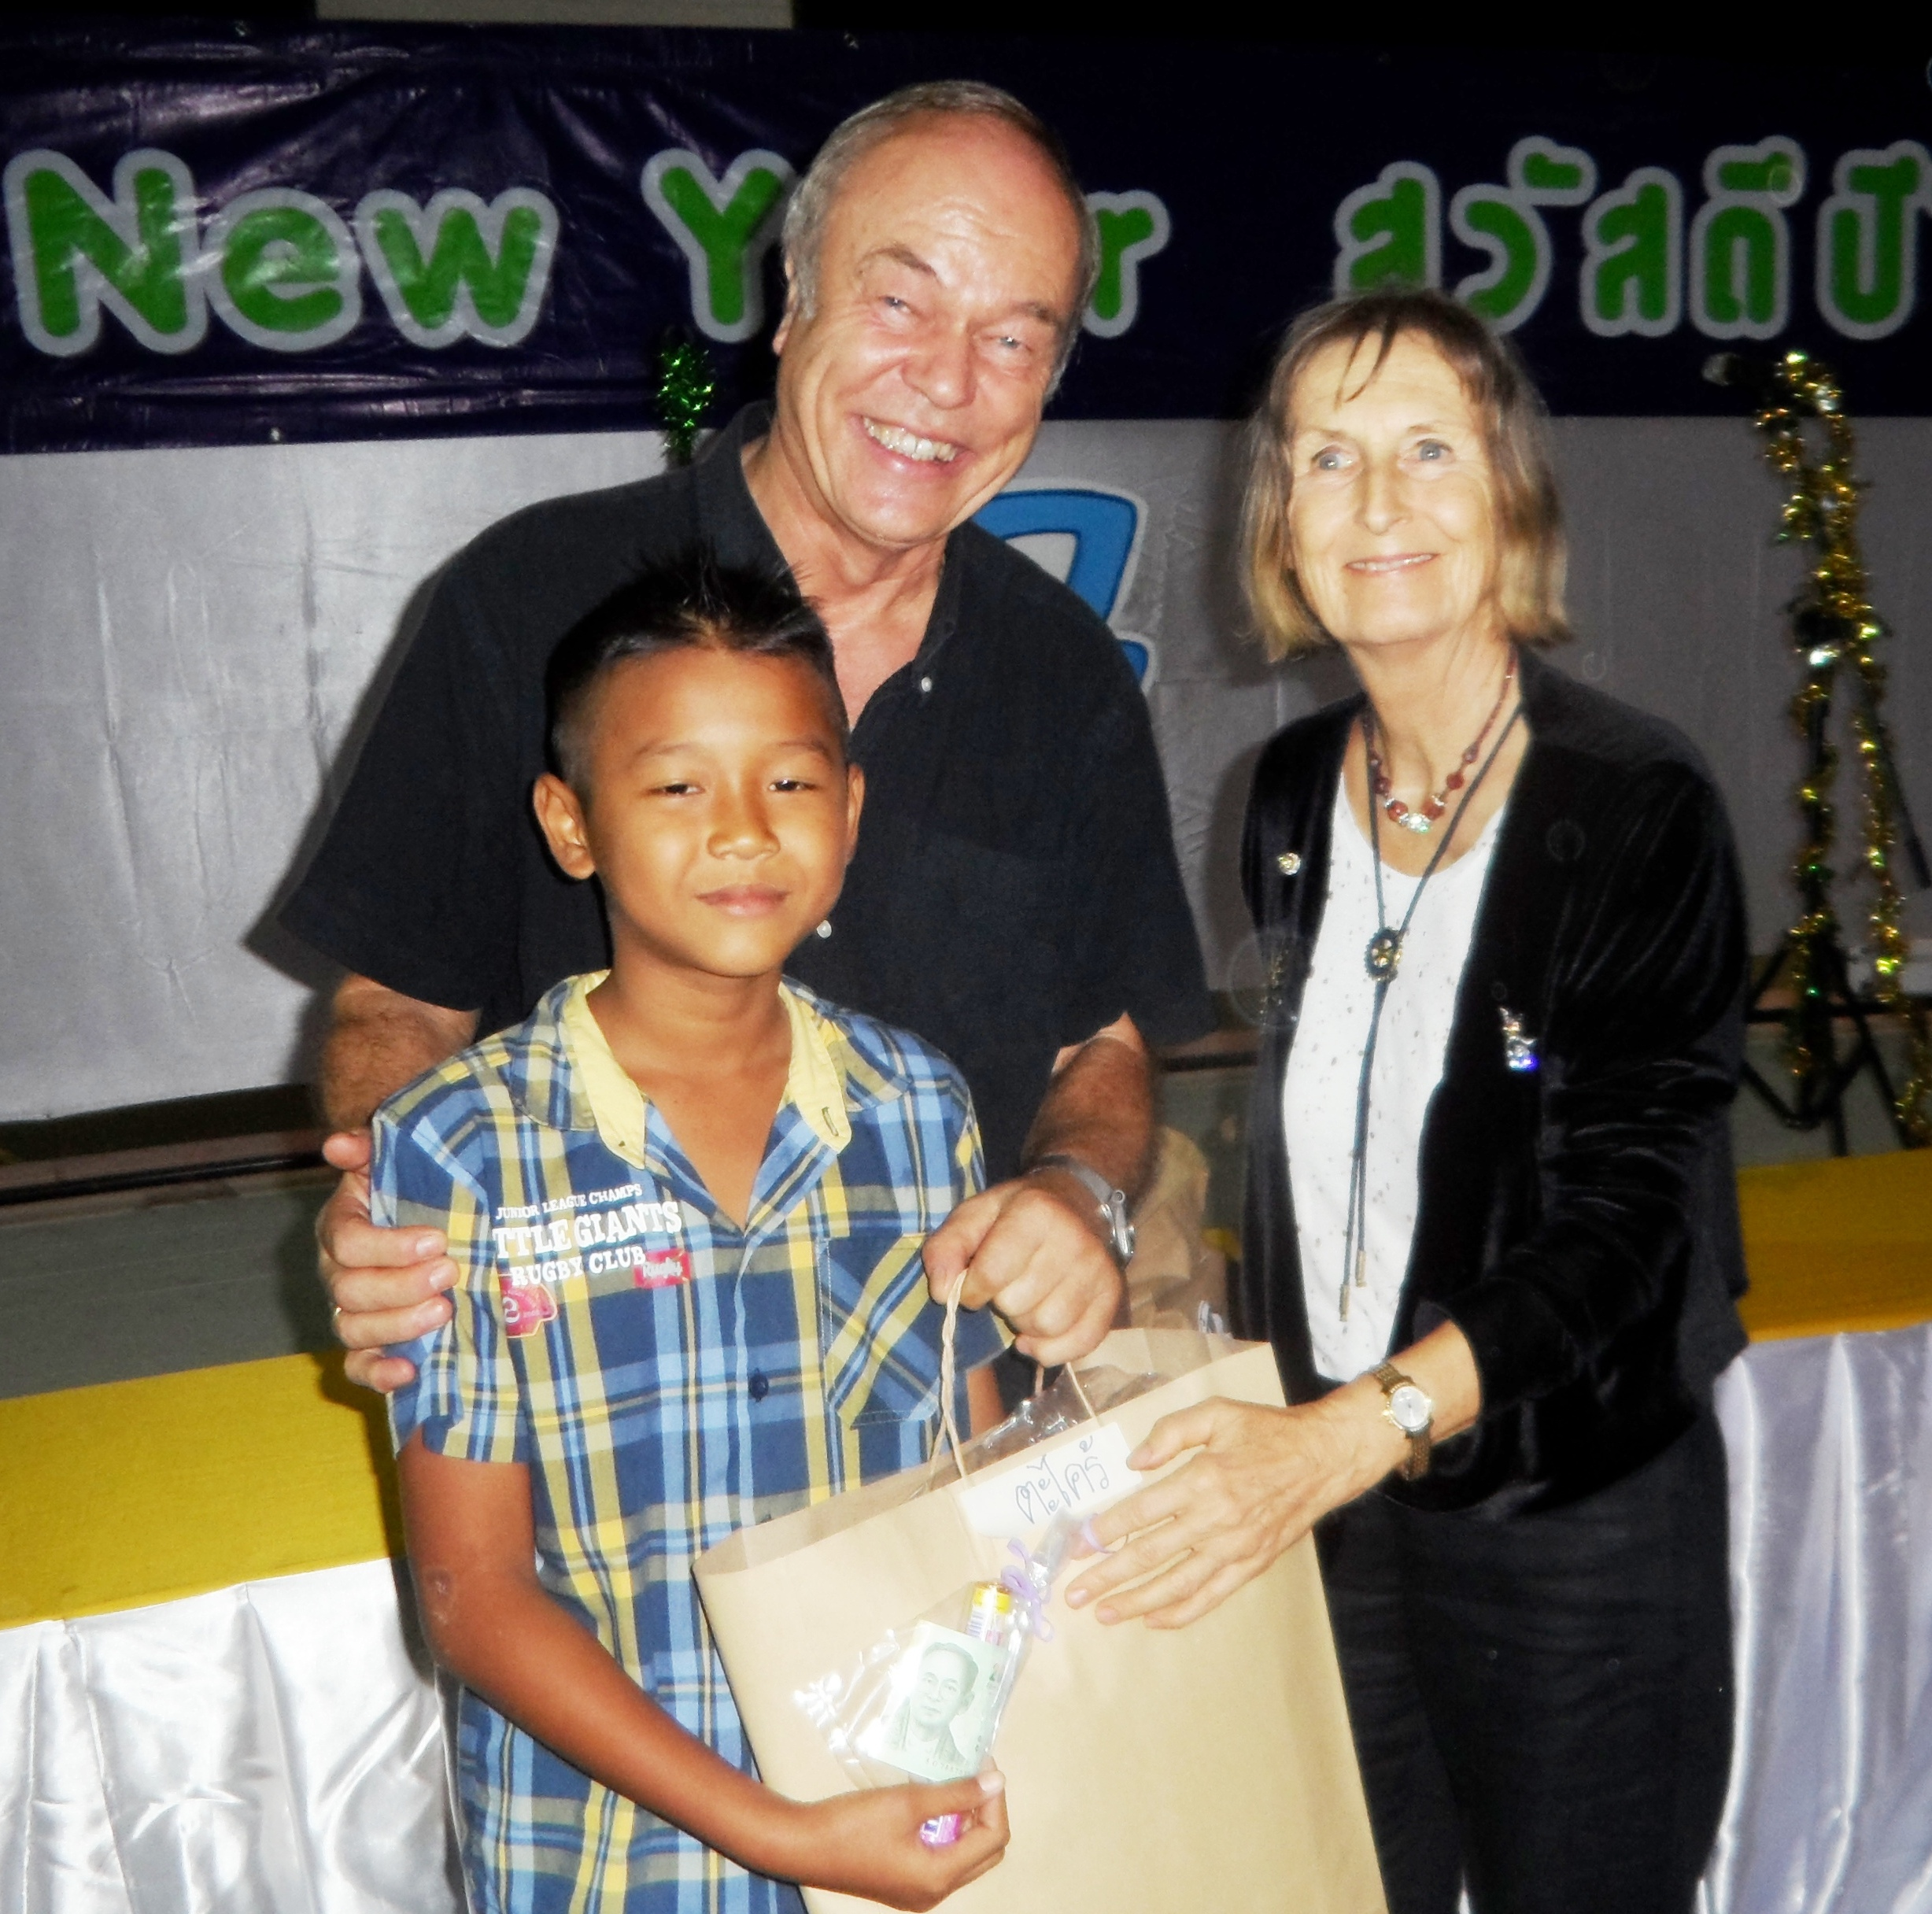 Pastor Liebe and Dr. Margret Deter give presents to the kids.